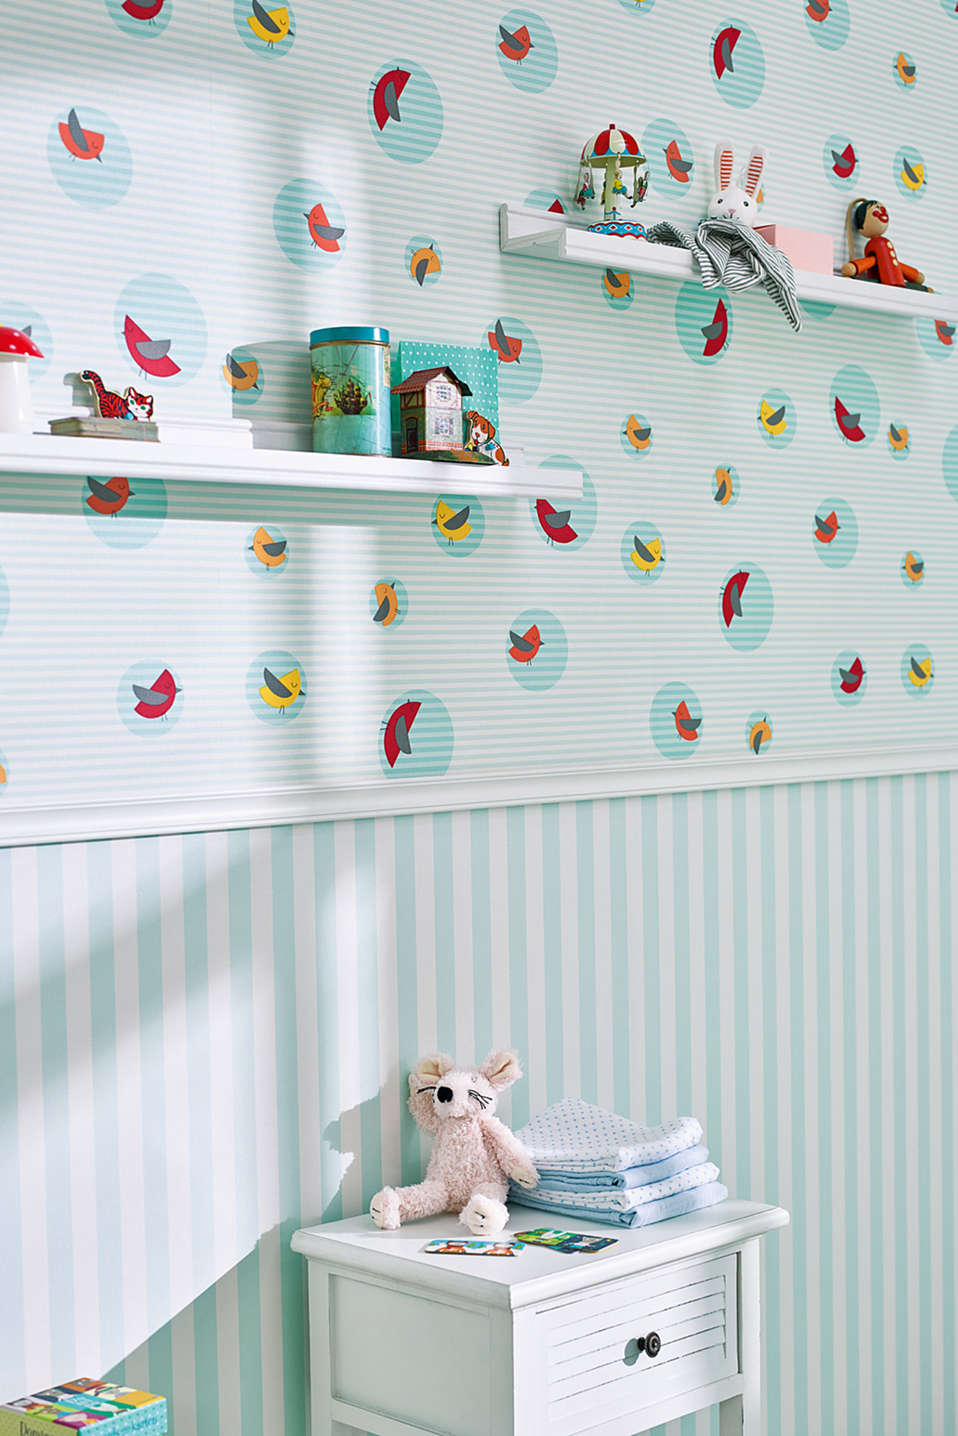 Lienzo de estilo infantil Sky Birds Striped